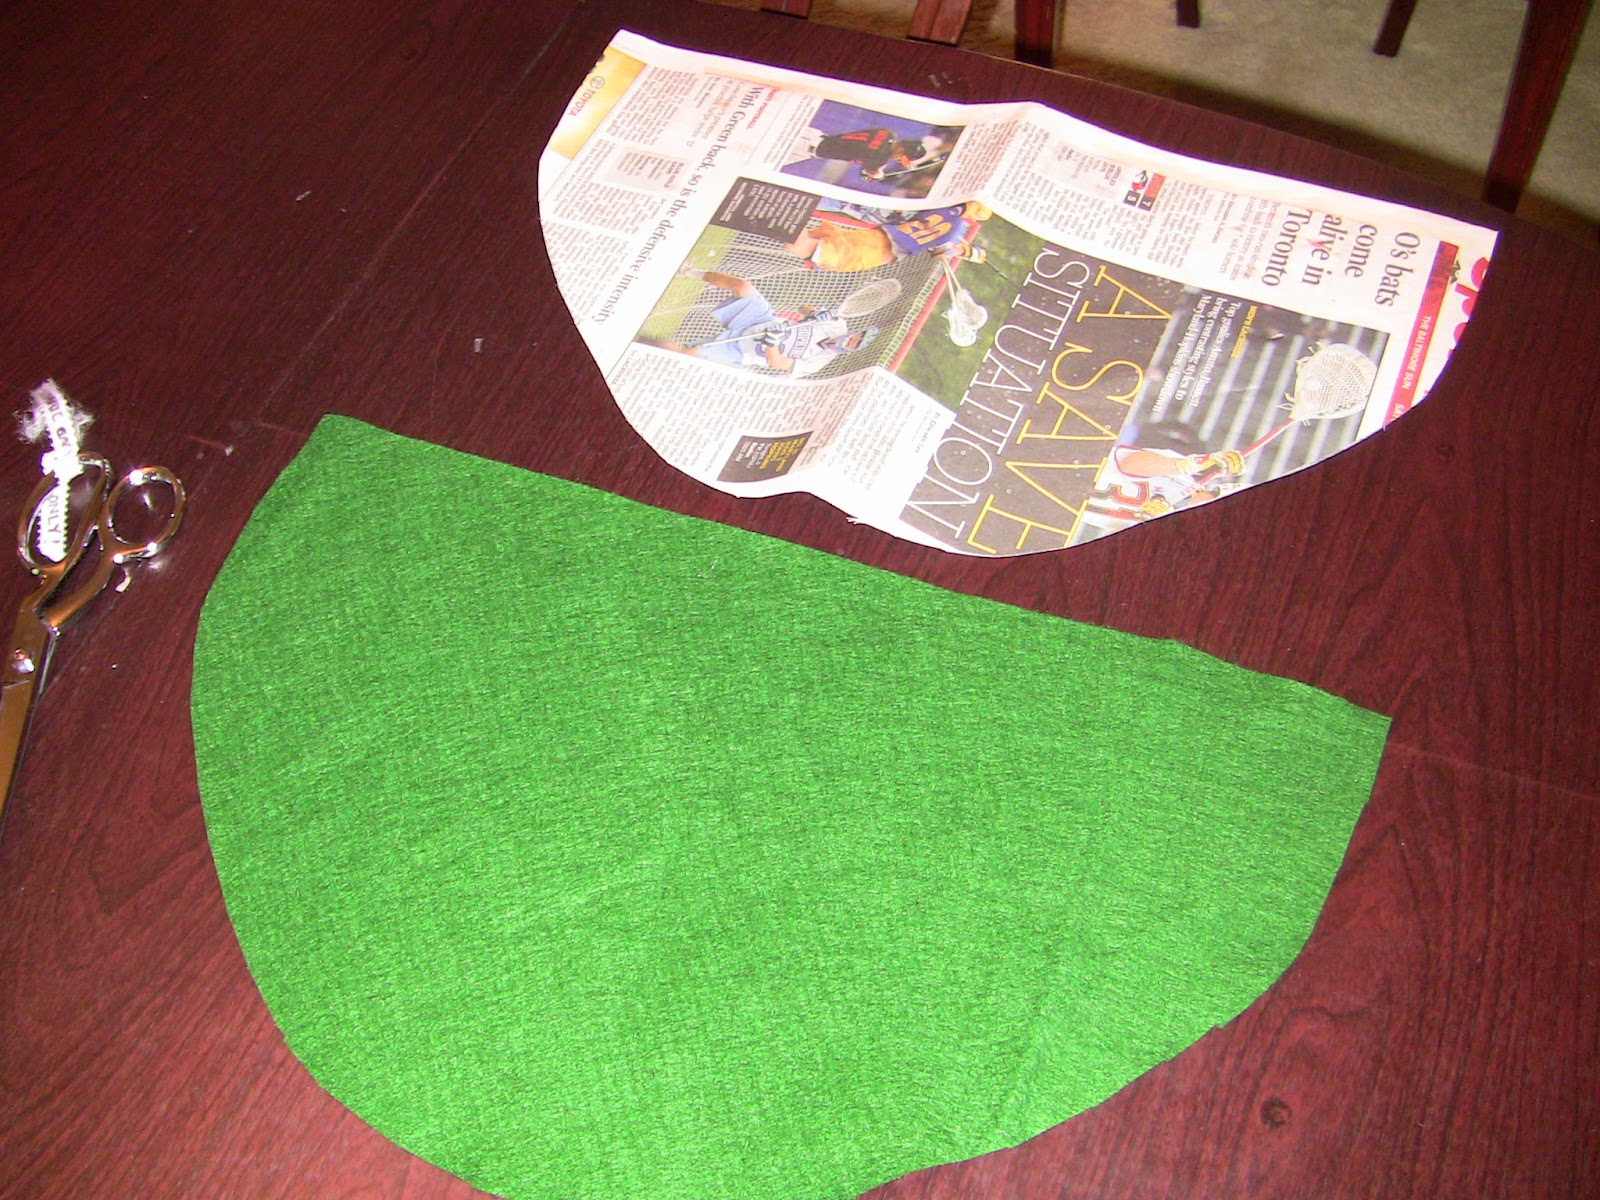 I First Made A Template From Newspaper And Cut Felt To Match The Straight Side Of Semi Circle Is 18 Inches Long Highest Point In Arch 11